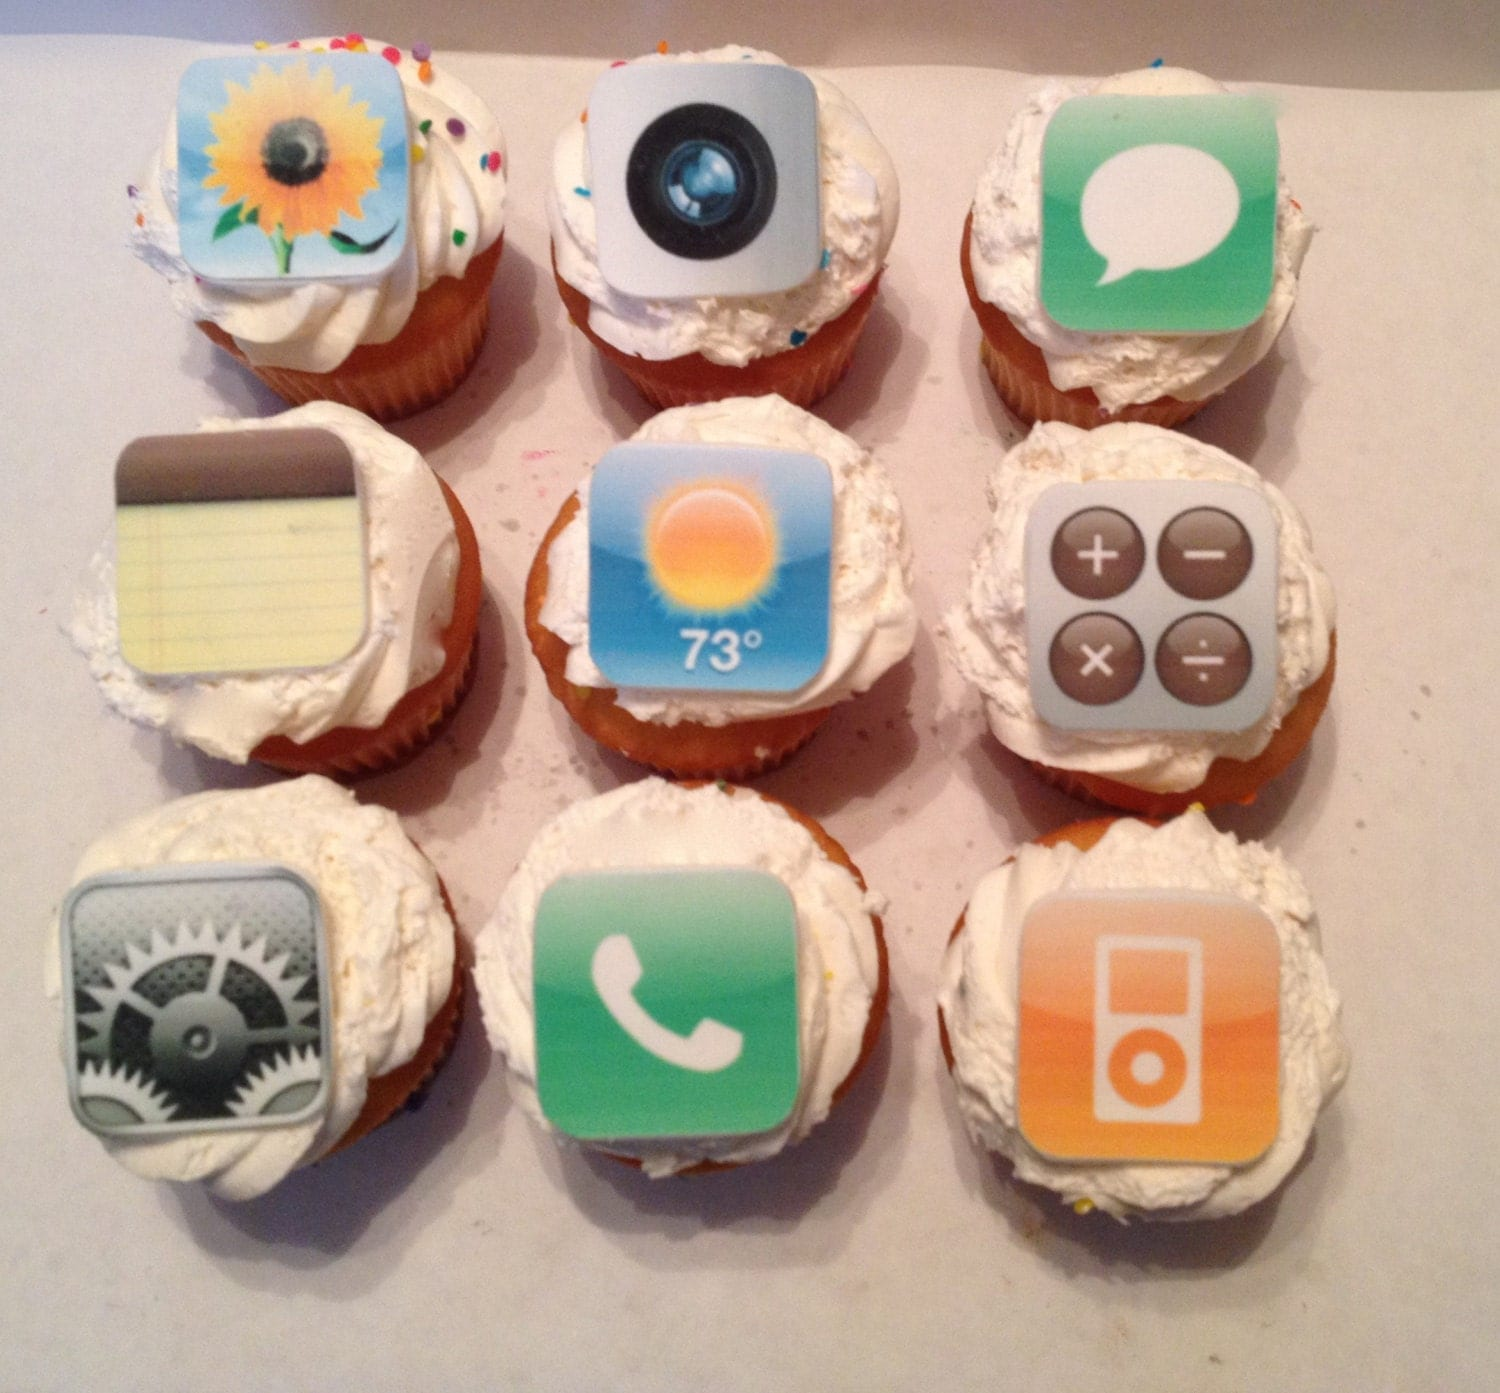 iPhone IPad Inspired Fondant Cupcake Toppers